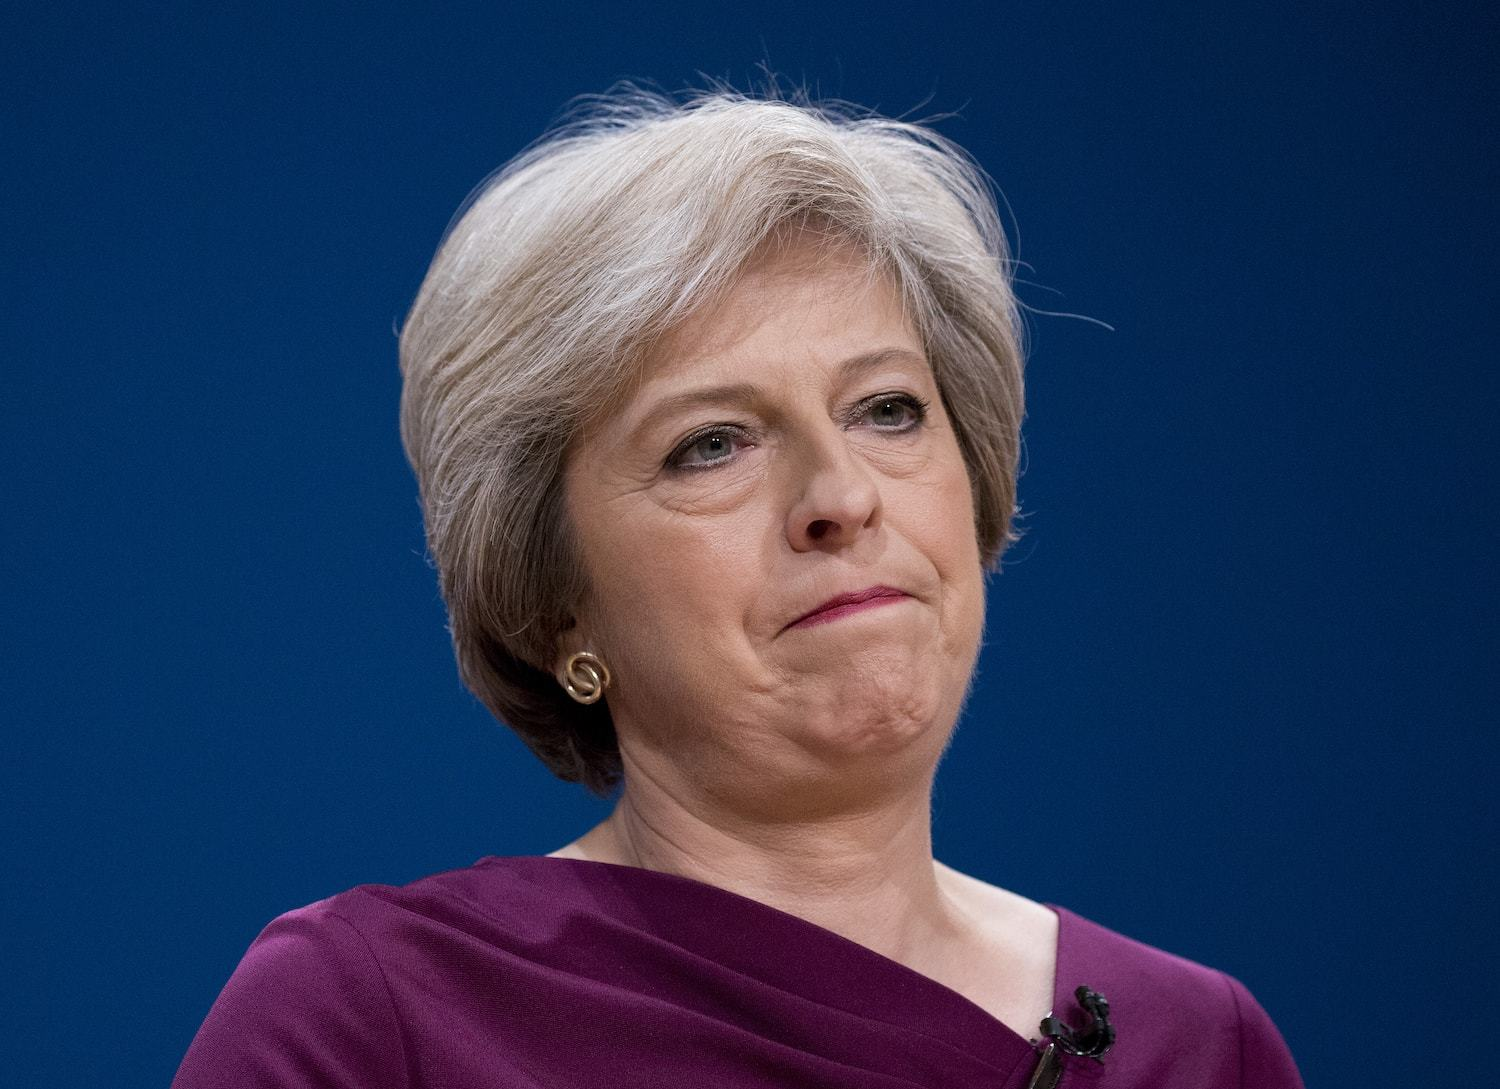 Man Found Guilty For Plotting To Kill Prime Minister Theresa May